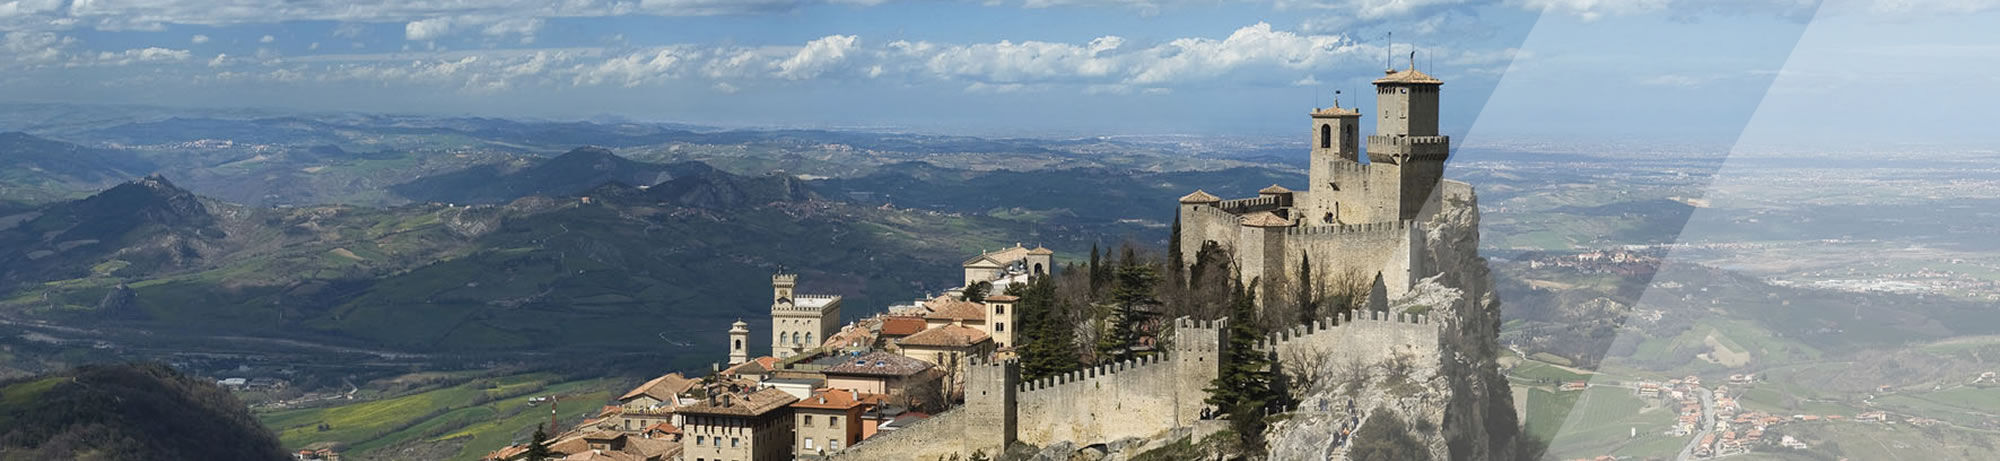 The hotels of San Marino Cycling Experience